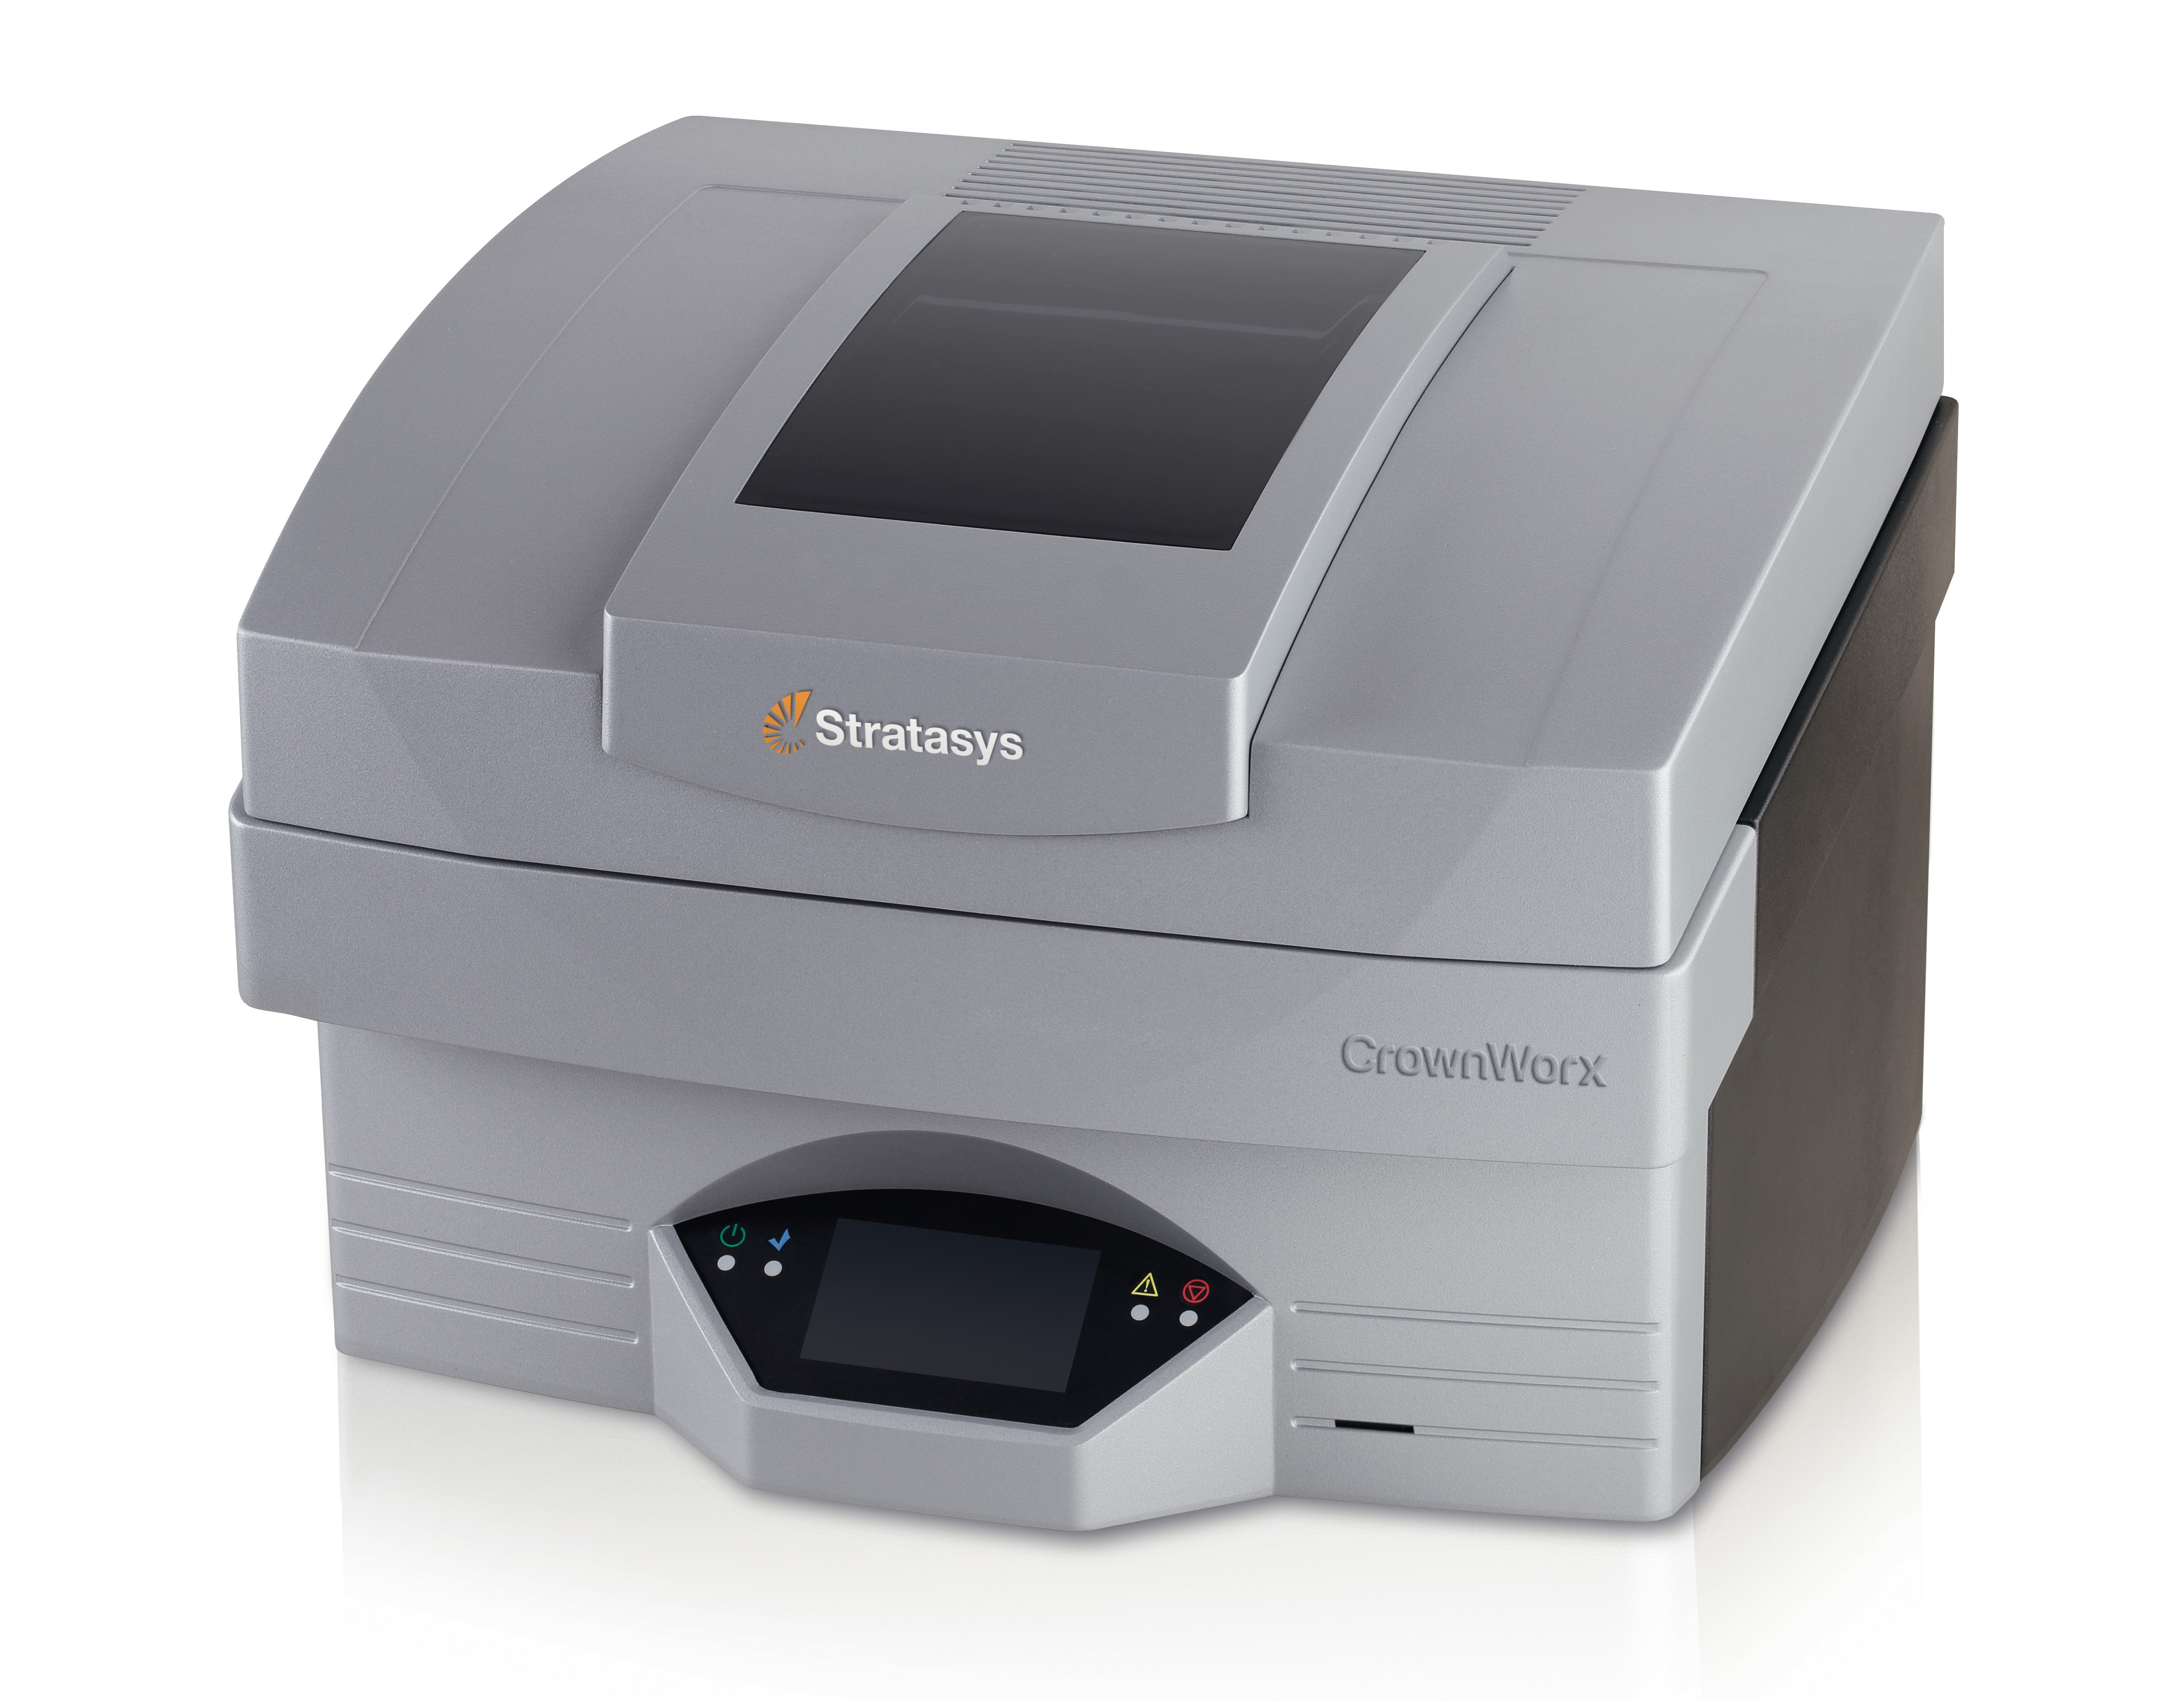 The Stratasys CrownWorx dental 3D printer produces wax-ups for crowns and bridges. (Photo: Stratasys)